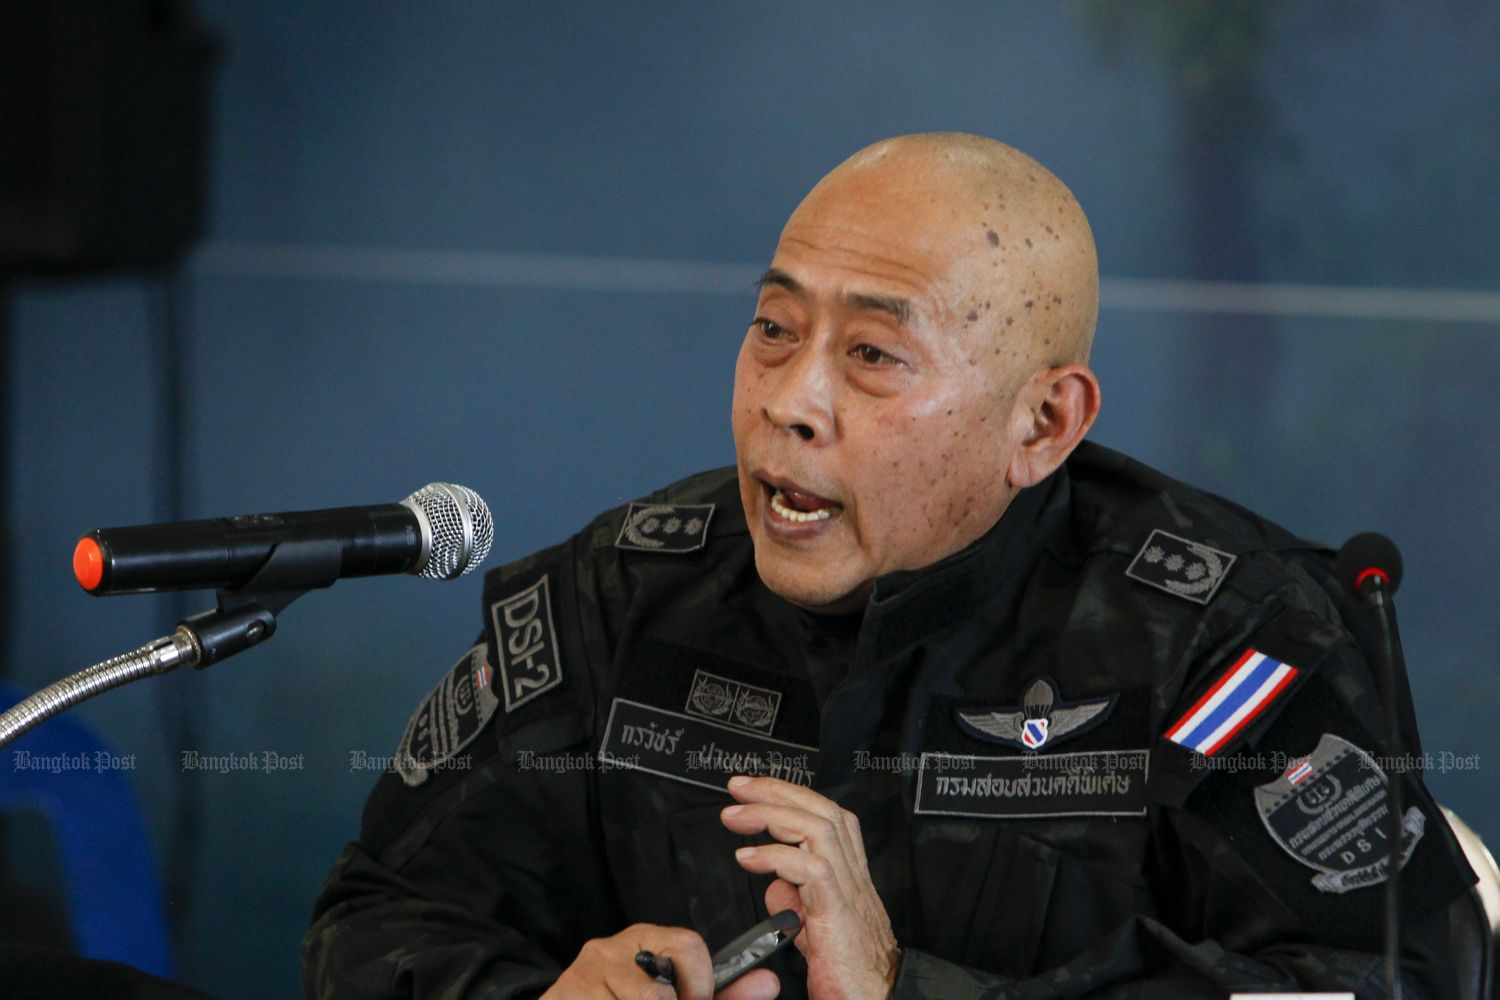 Department of Special Investigation director-general Pol Lt Col Korawat Panprapakorn.